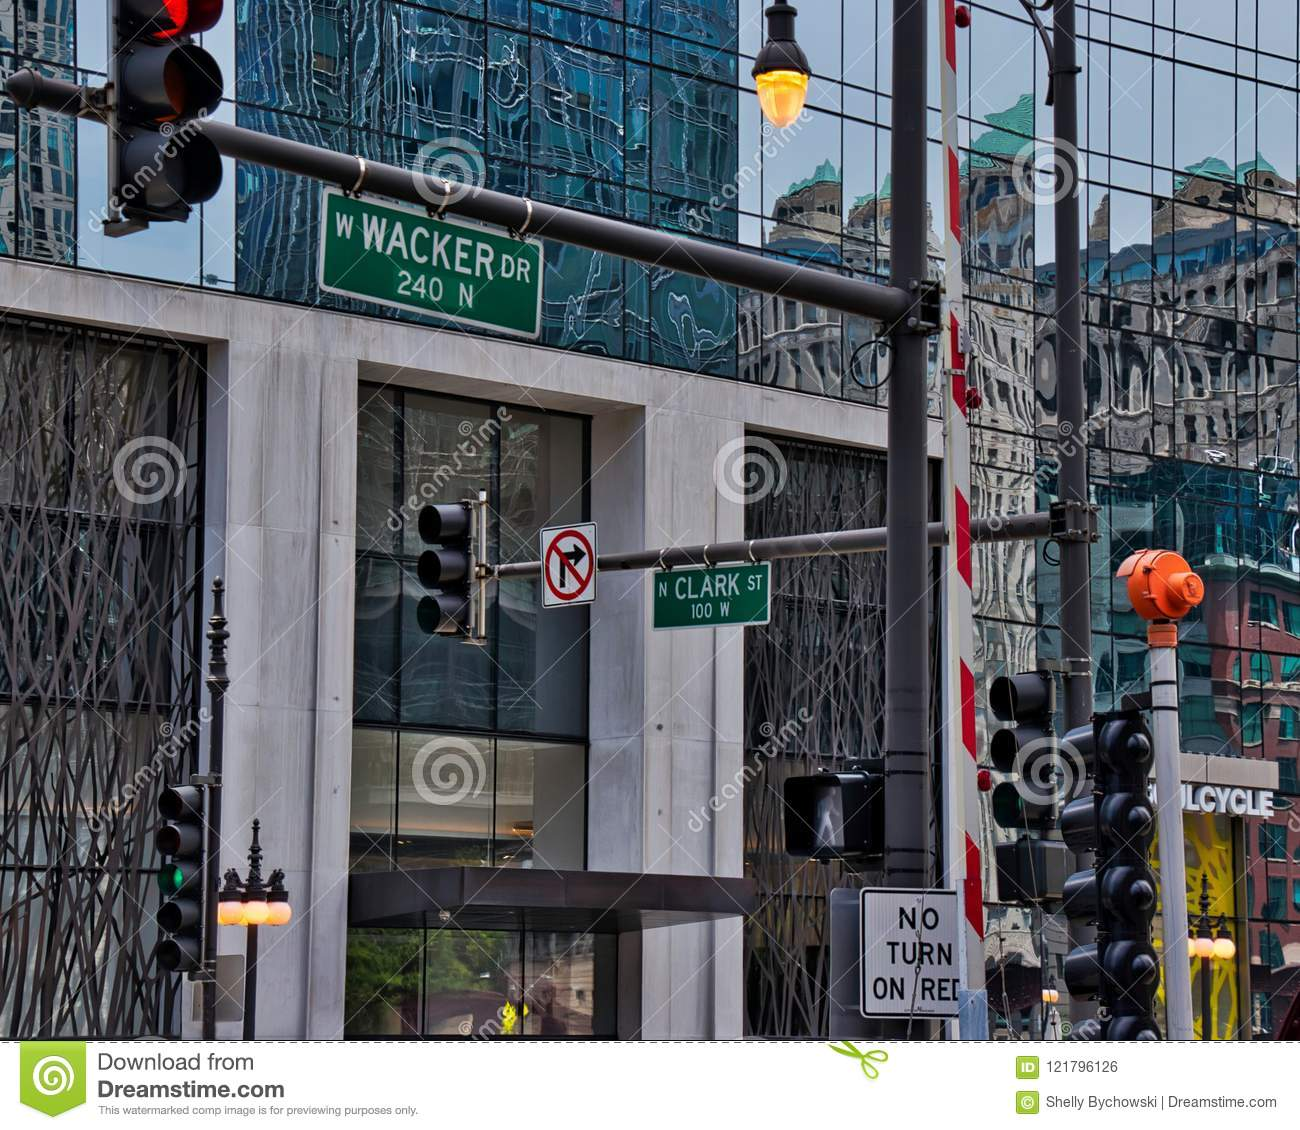 Downtown S Foreman Clark Building To Become 124: Busy Intersection Of Wacker Drive And Clark Street In